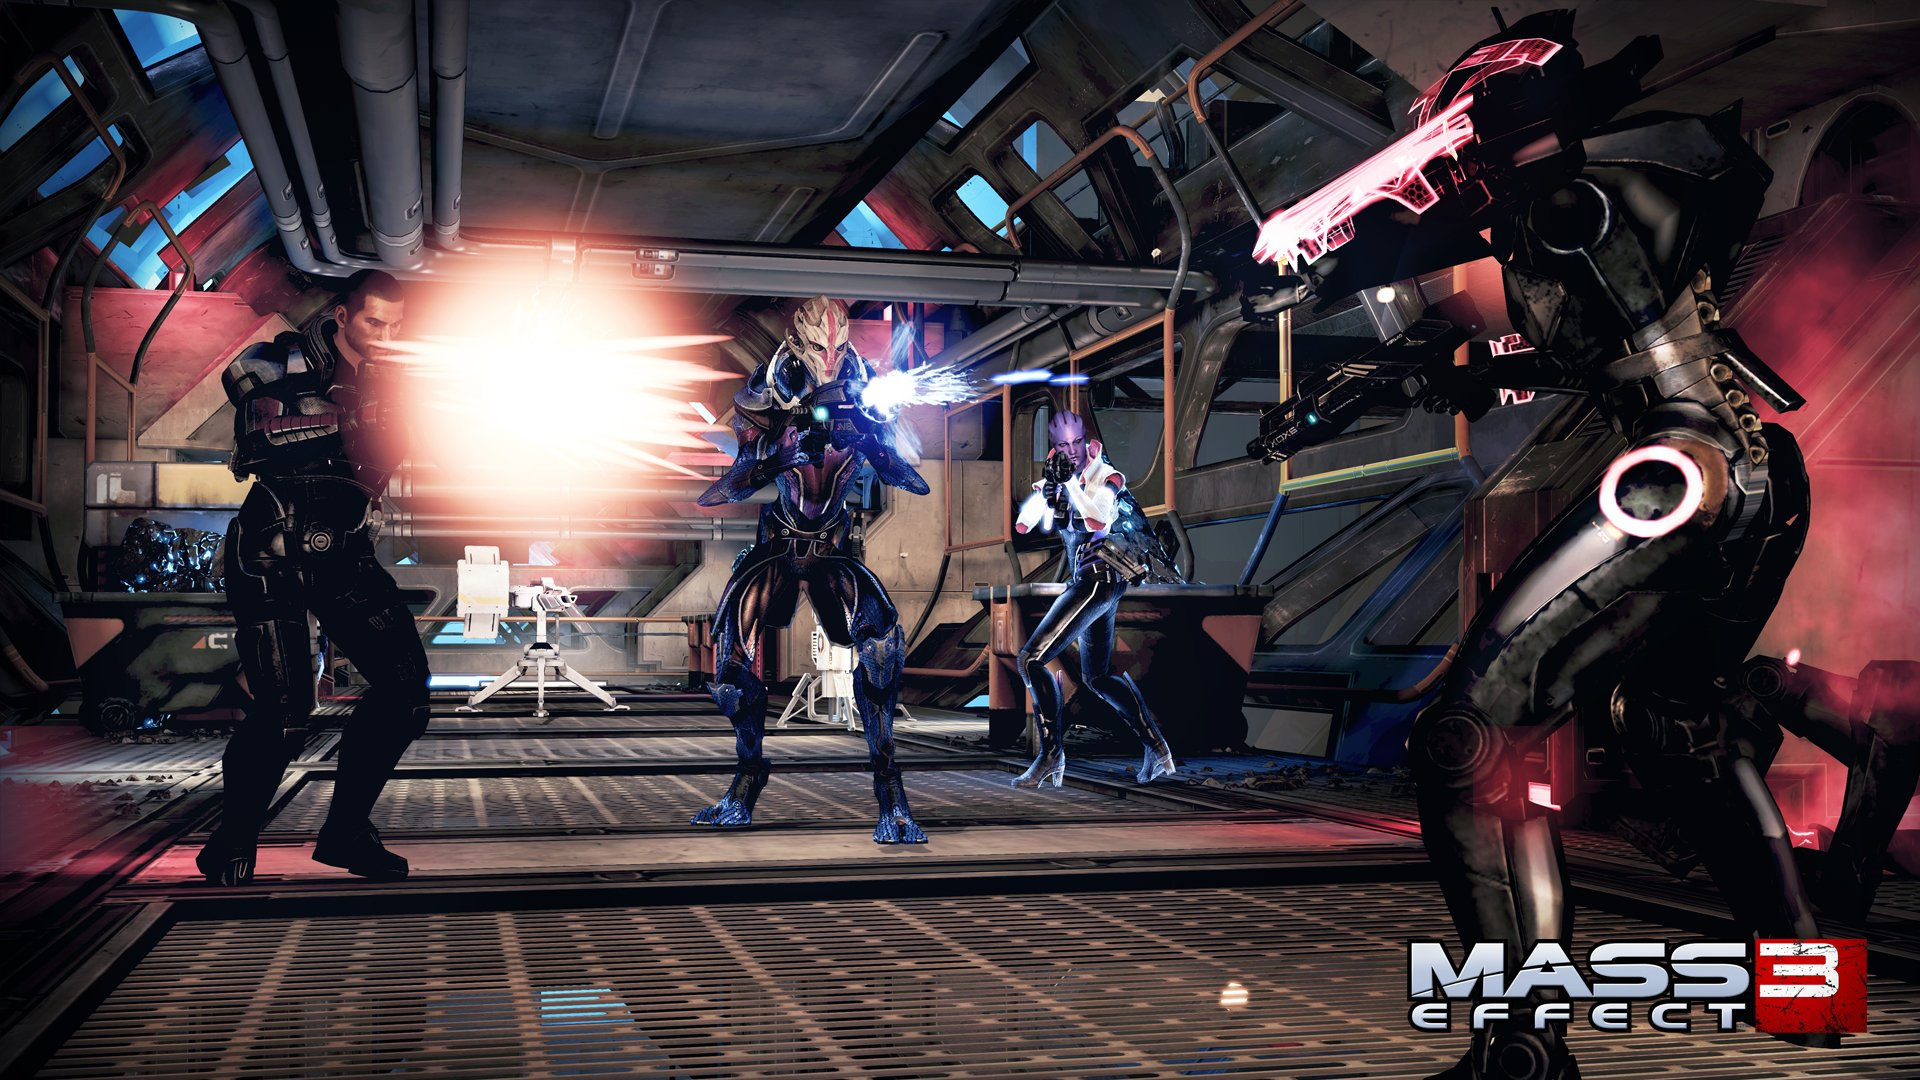 Mass Effect: Omega (360) – oh, more robots